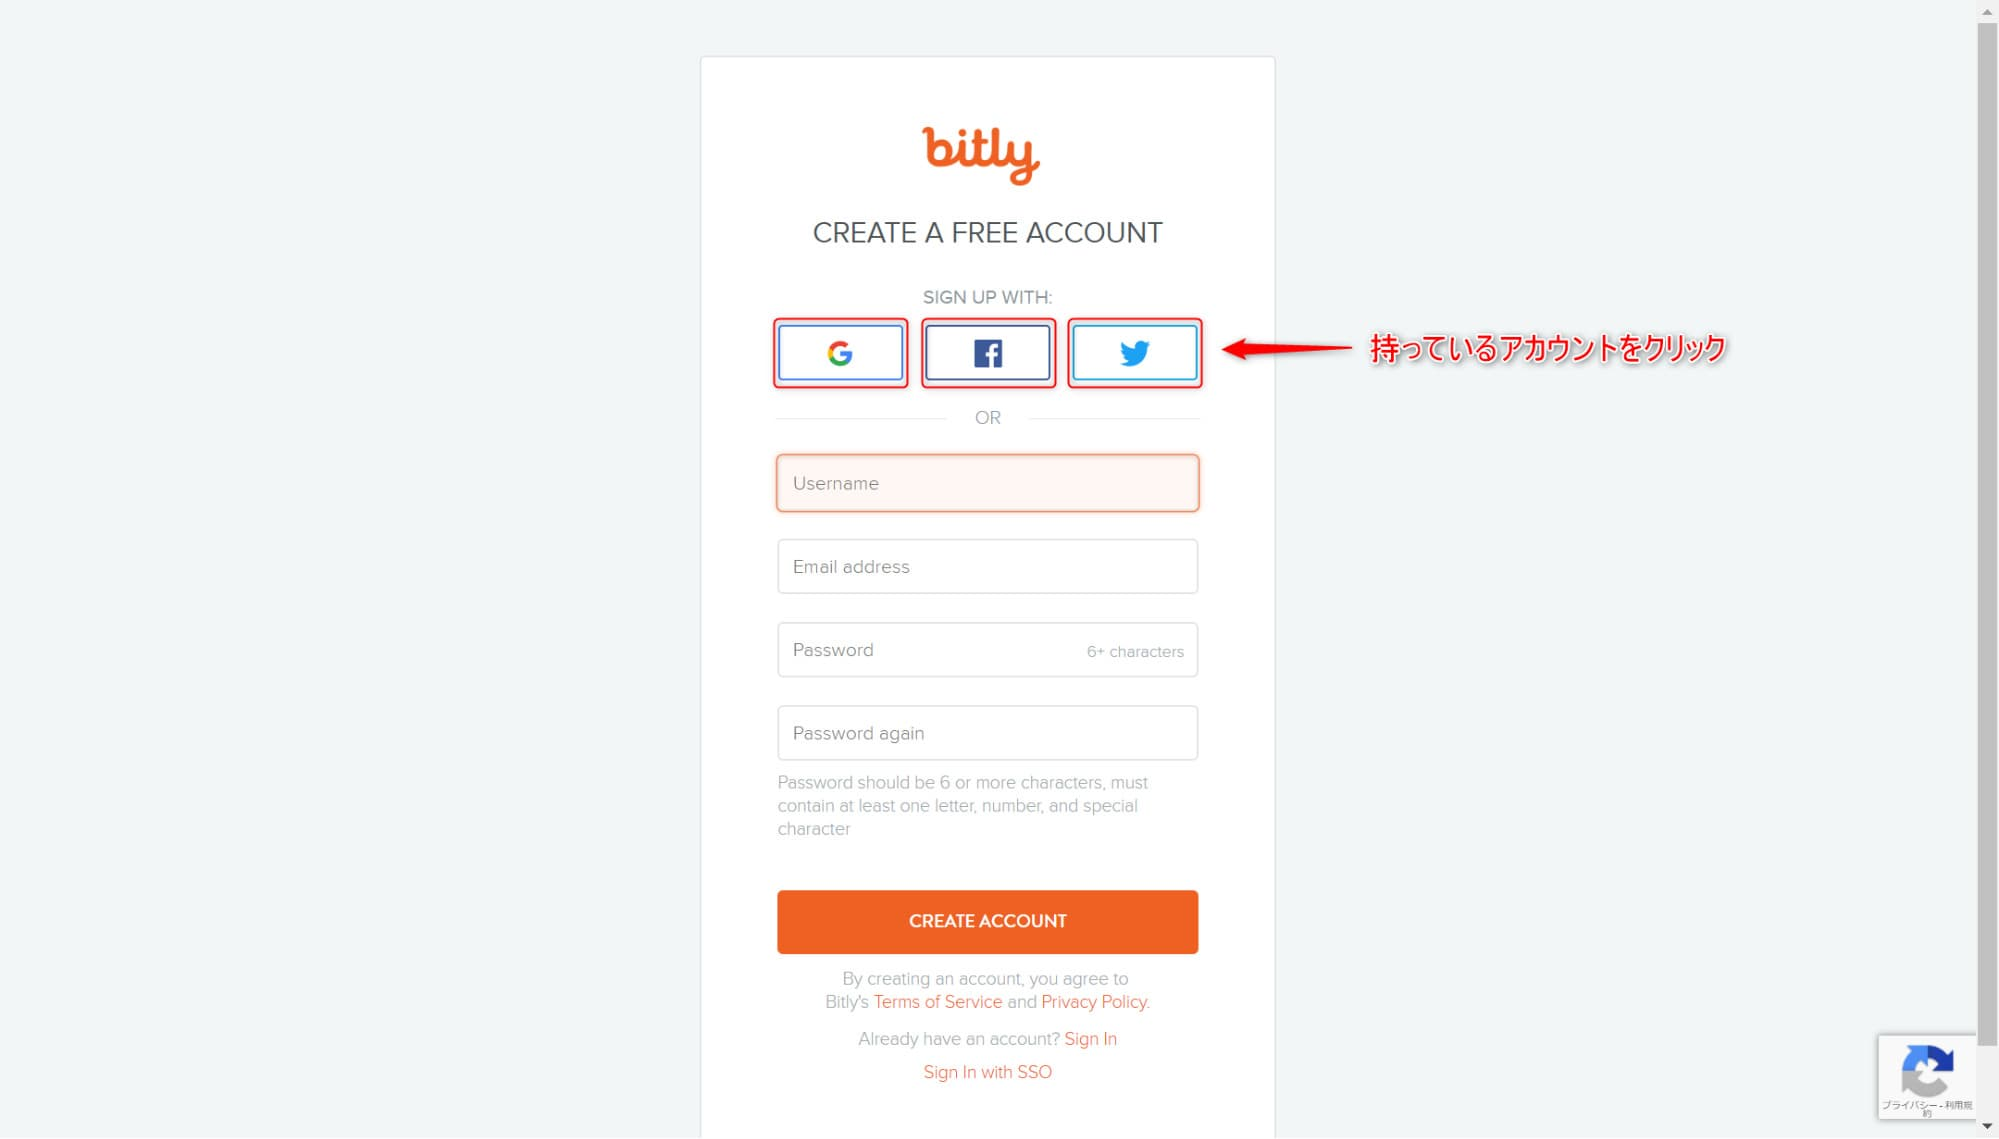 bitly Google,Facebook,Twitterでサインイン